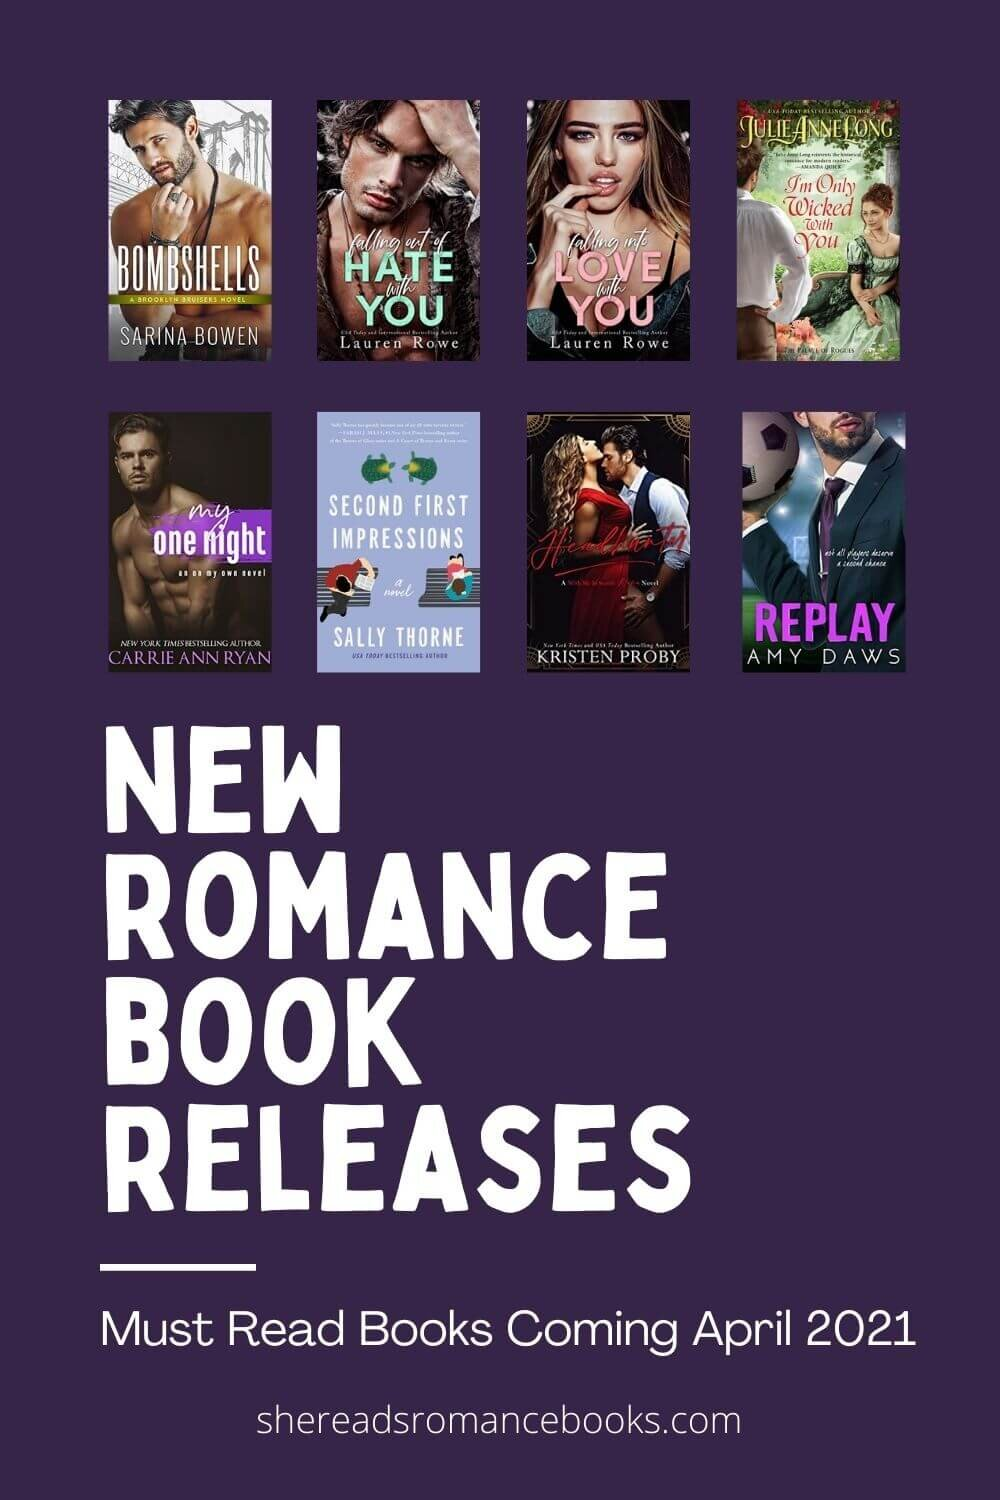 Check out the list of most anticipated romance books for April 2021.